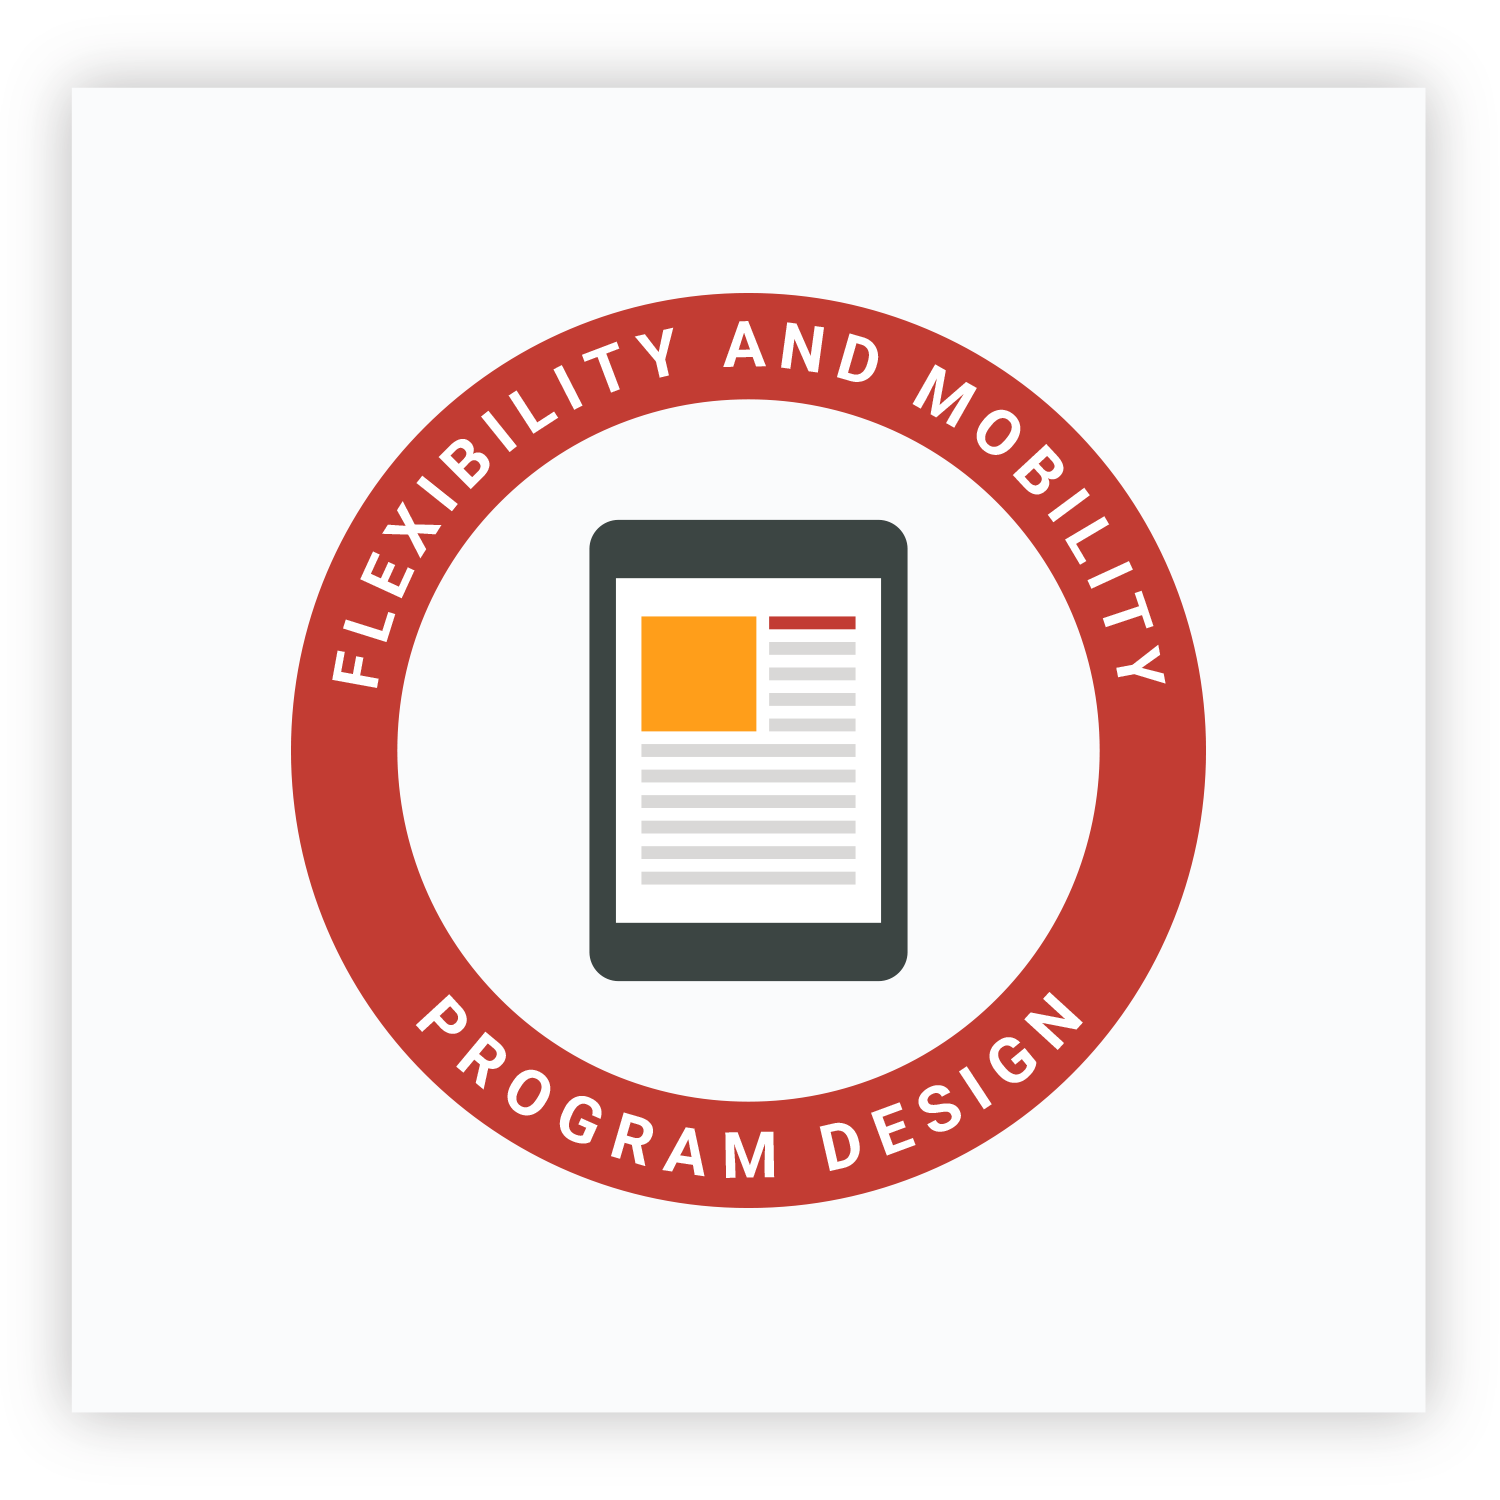 Program Design Course: - 7 Videos1 hour run timeLearn how to design in-app Flexibility and Mobility Programs using the data from range of motion measurements. This is an exact science.Learn More